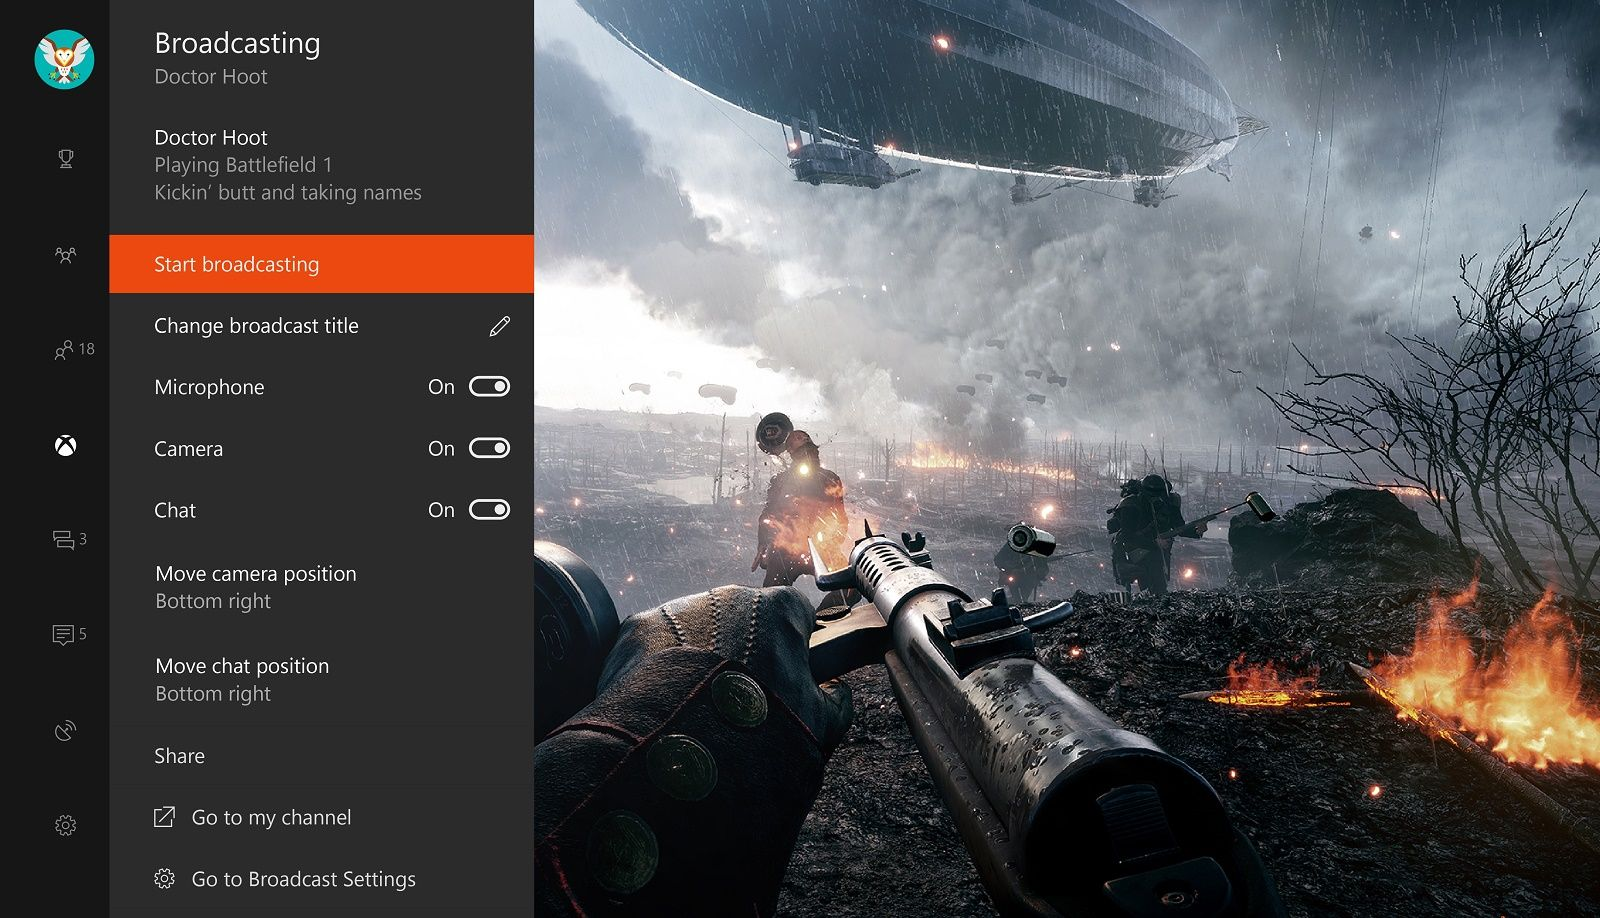 Microsoft Launches Game Streaming App Beam on Xbox One: Full